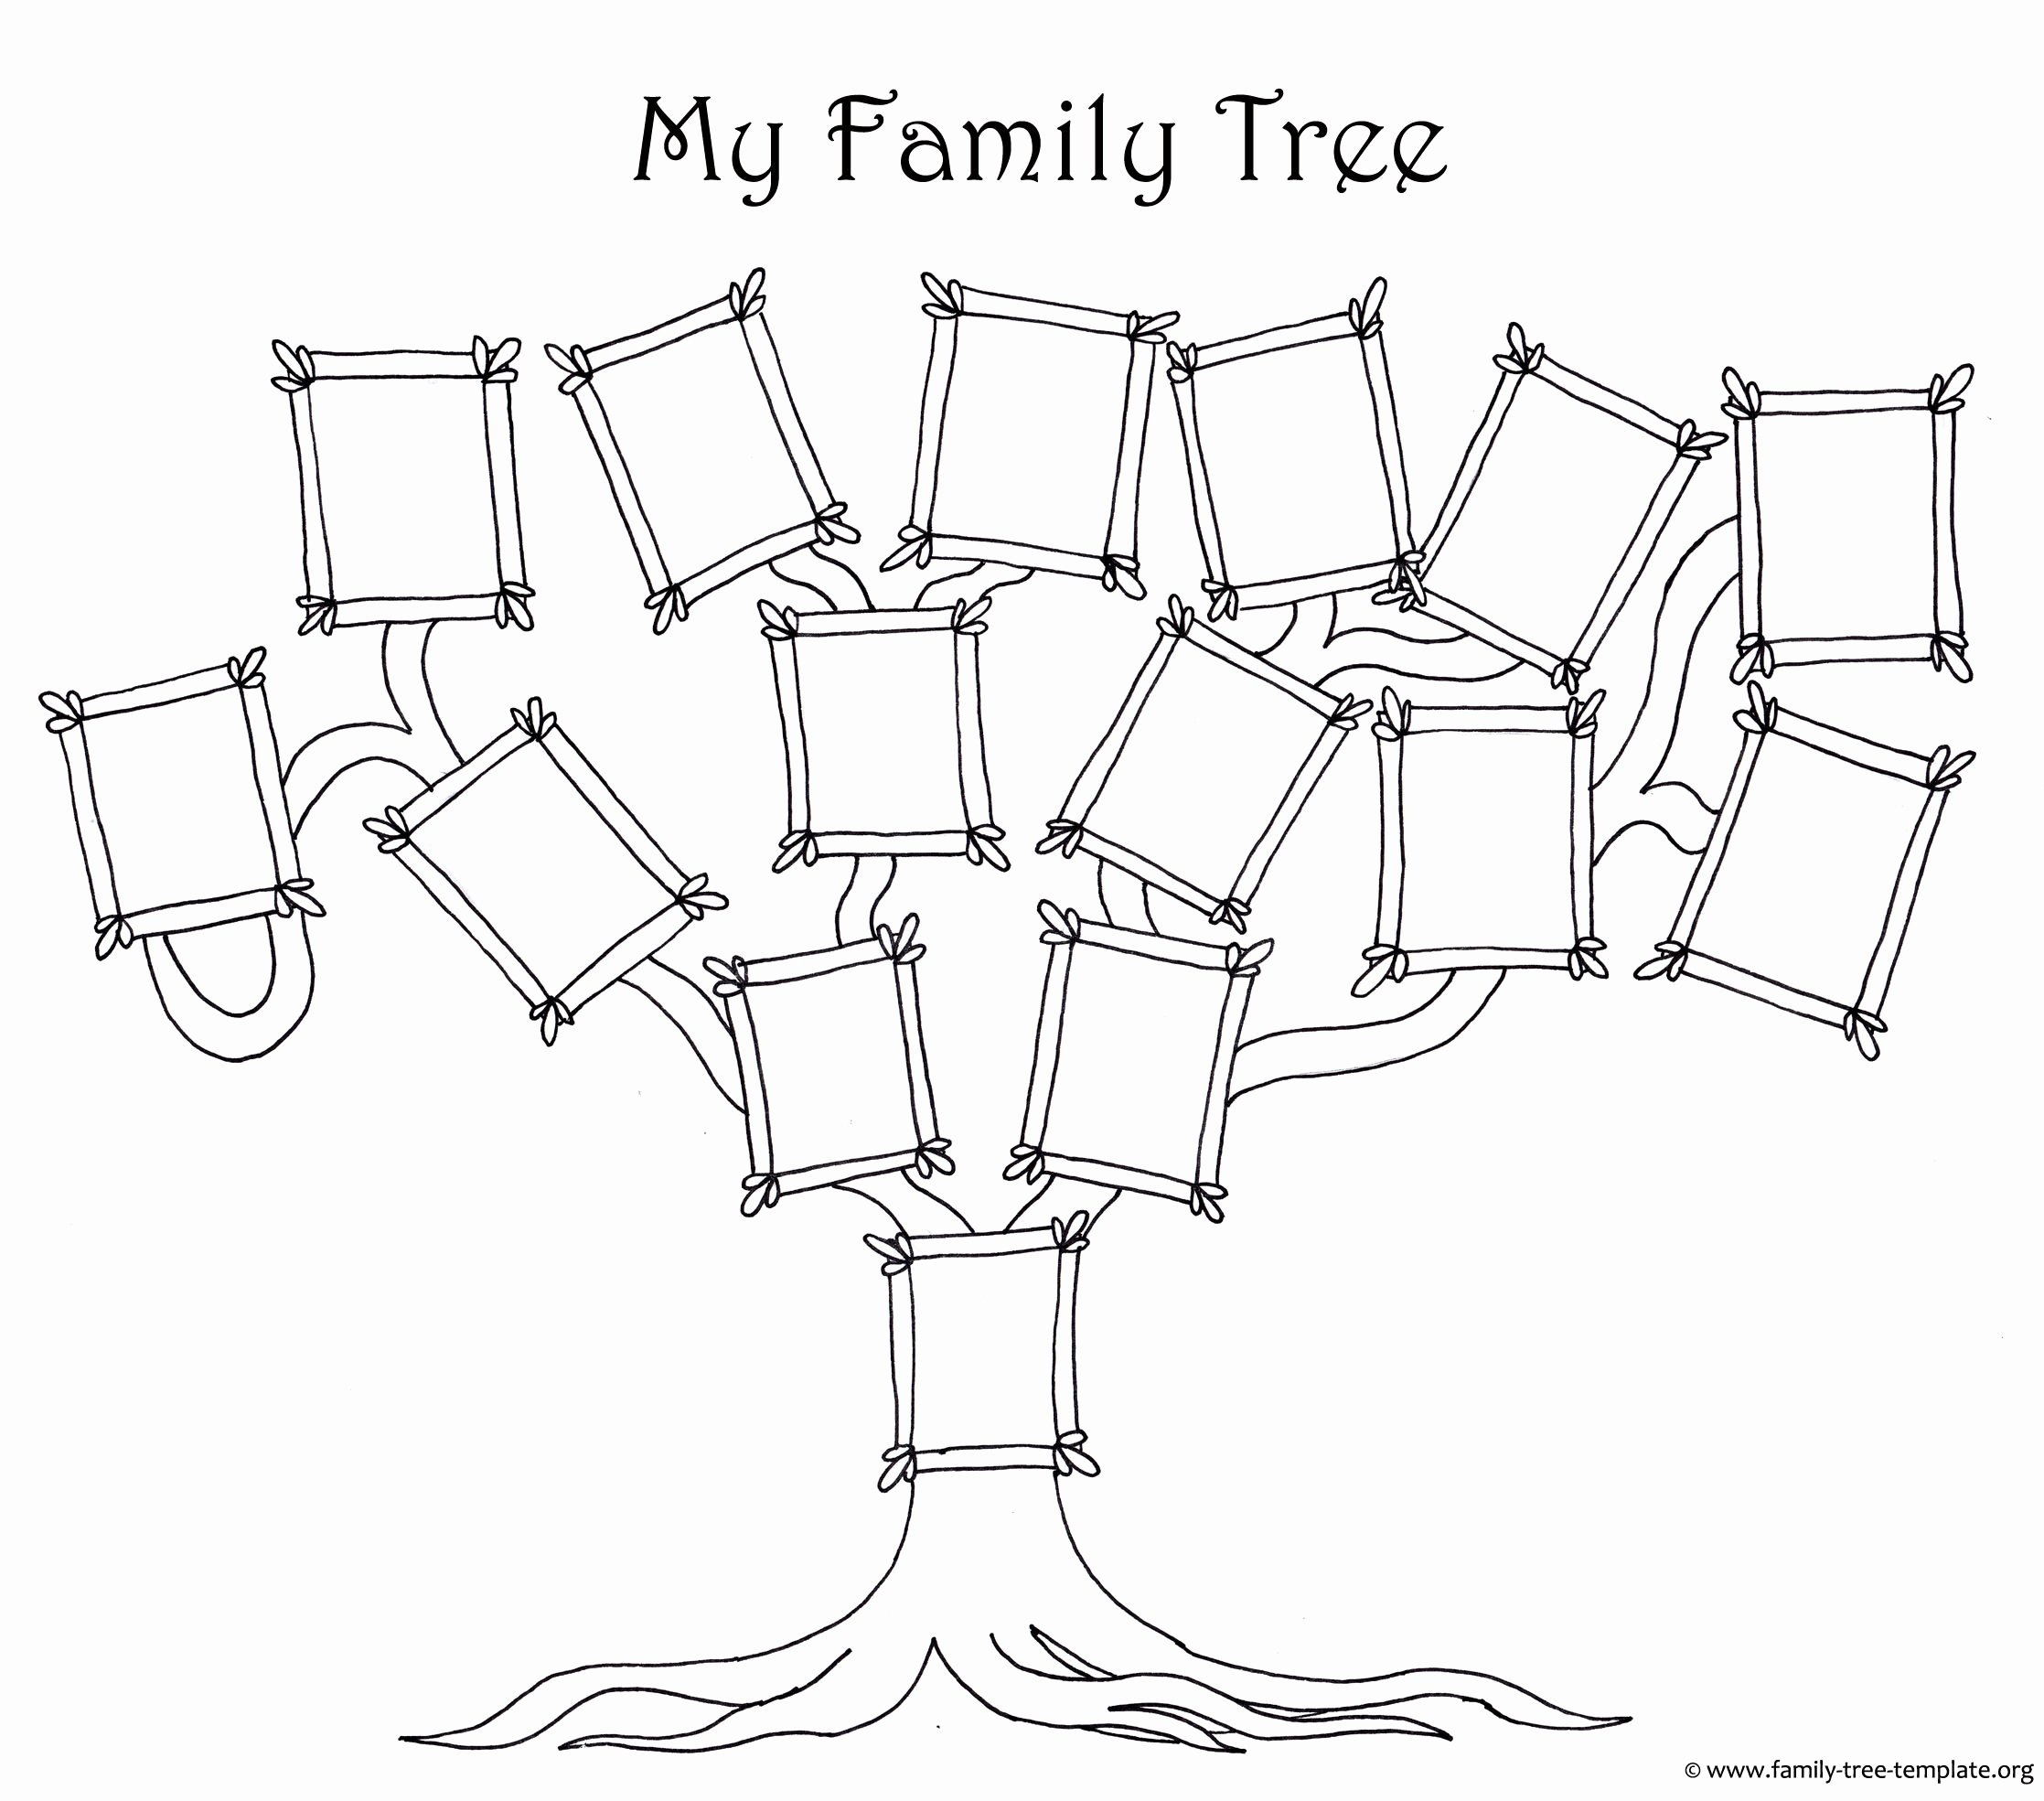 Family Tree Template with Photos Lovely Free Family Tree Template Designs for Making Ancestry